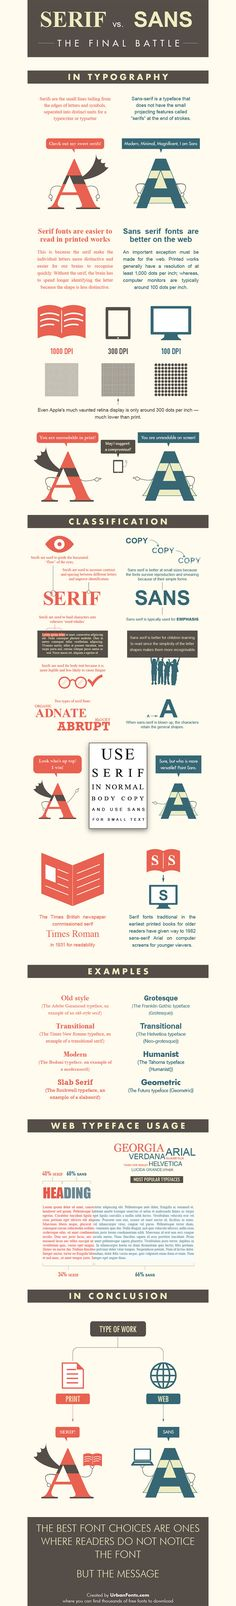 The Difference Between Serif And Sans-Serif Explained In One Infographic_ how to use them correctly